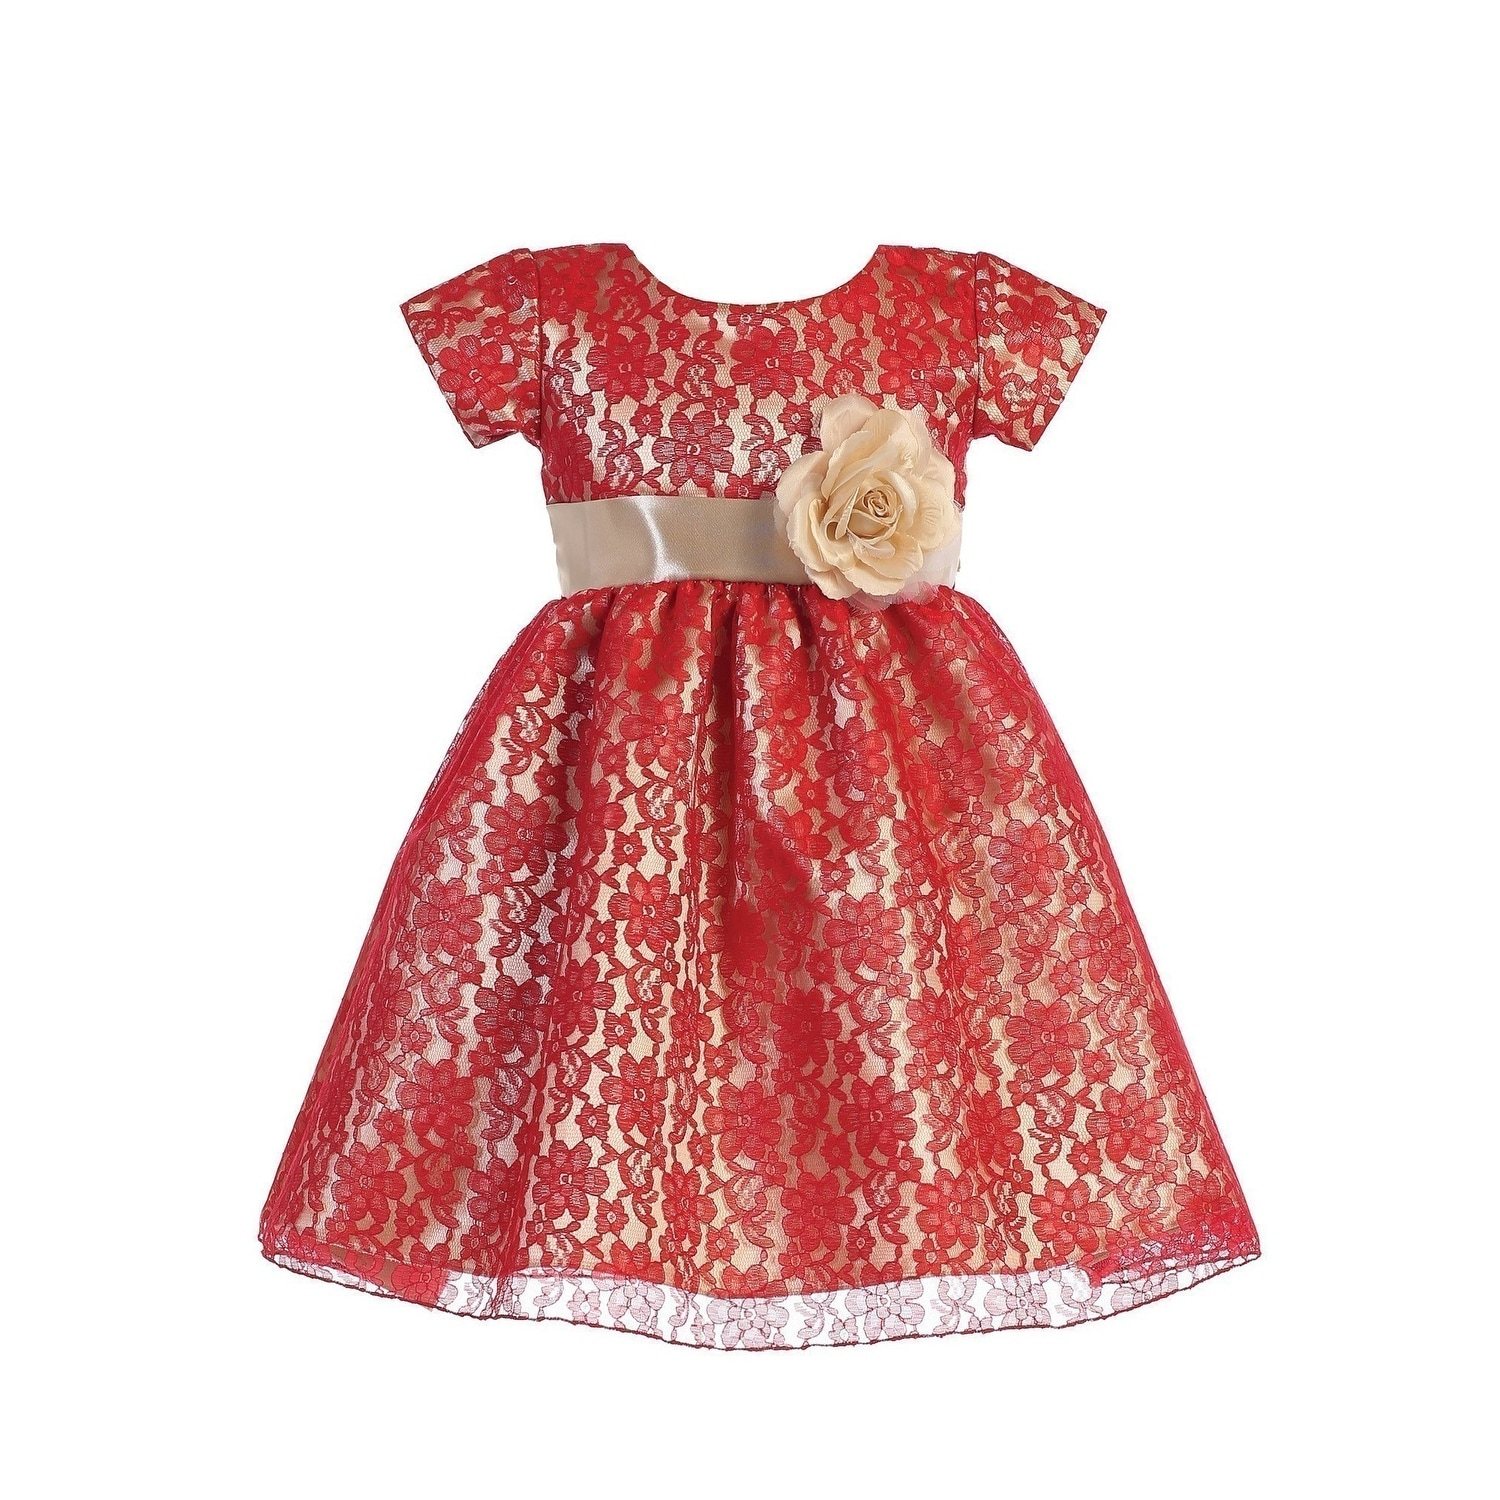 Lito Baby Girls Red Gold Lace Shiny Satin Underlay Christmas Dress - 5-5  Months